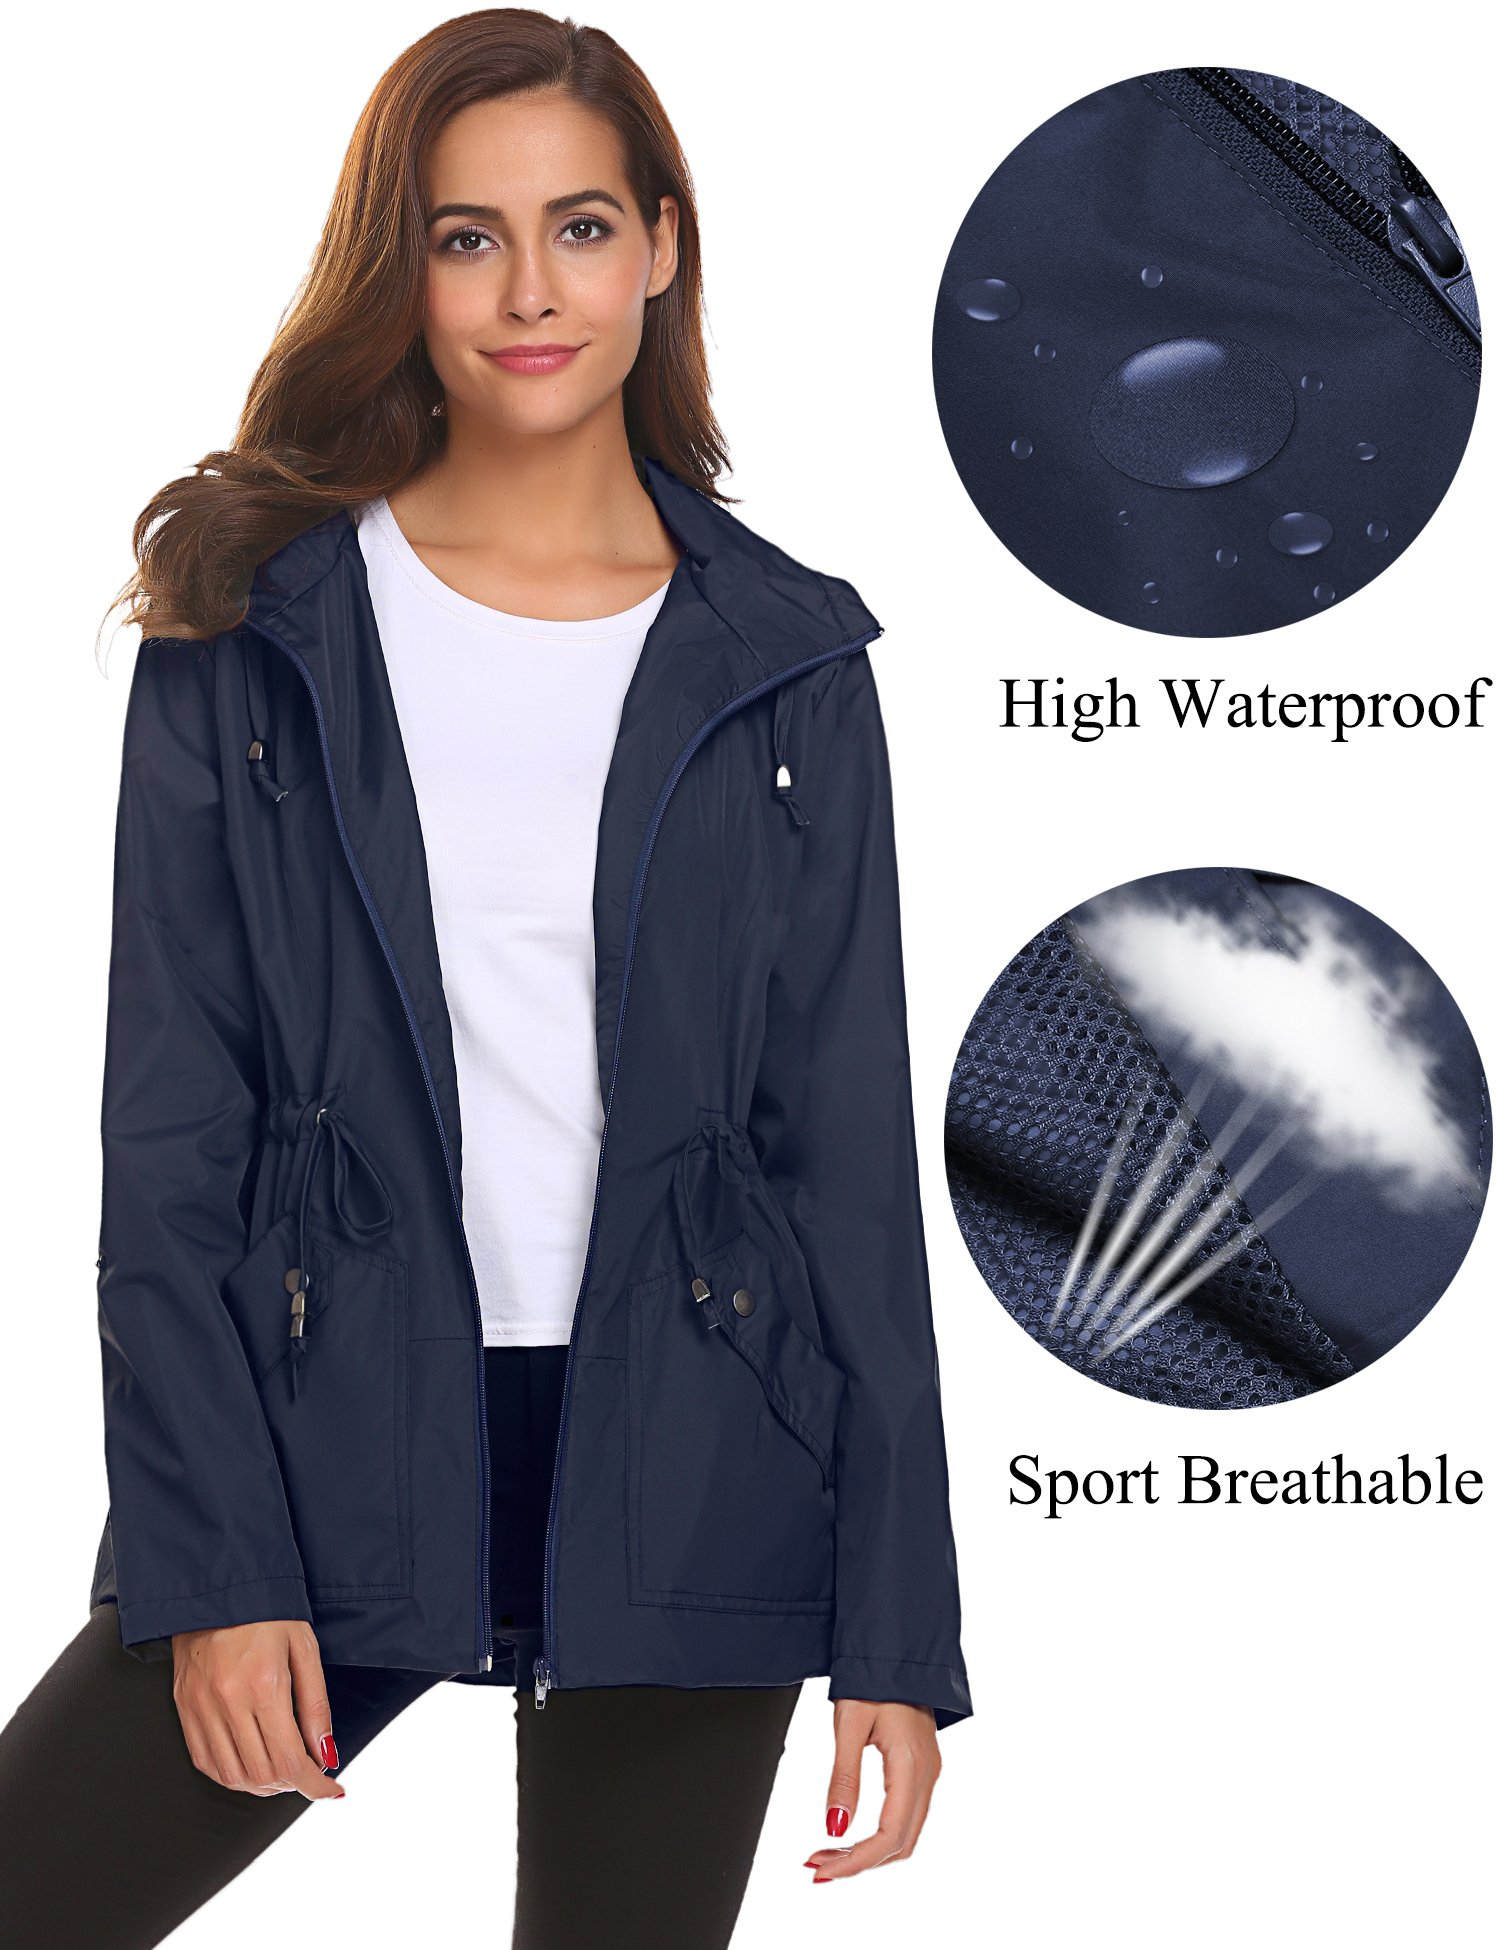 Waterproof Jackets for Women,Outdoor Rain Coat Windbreaker Lightweight with Hood